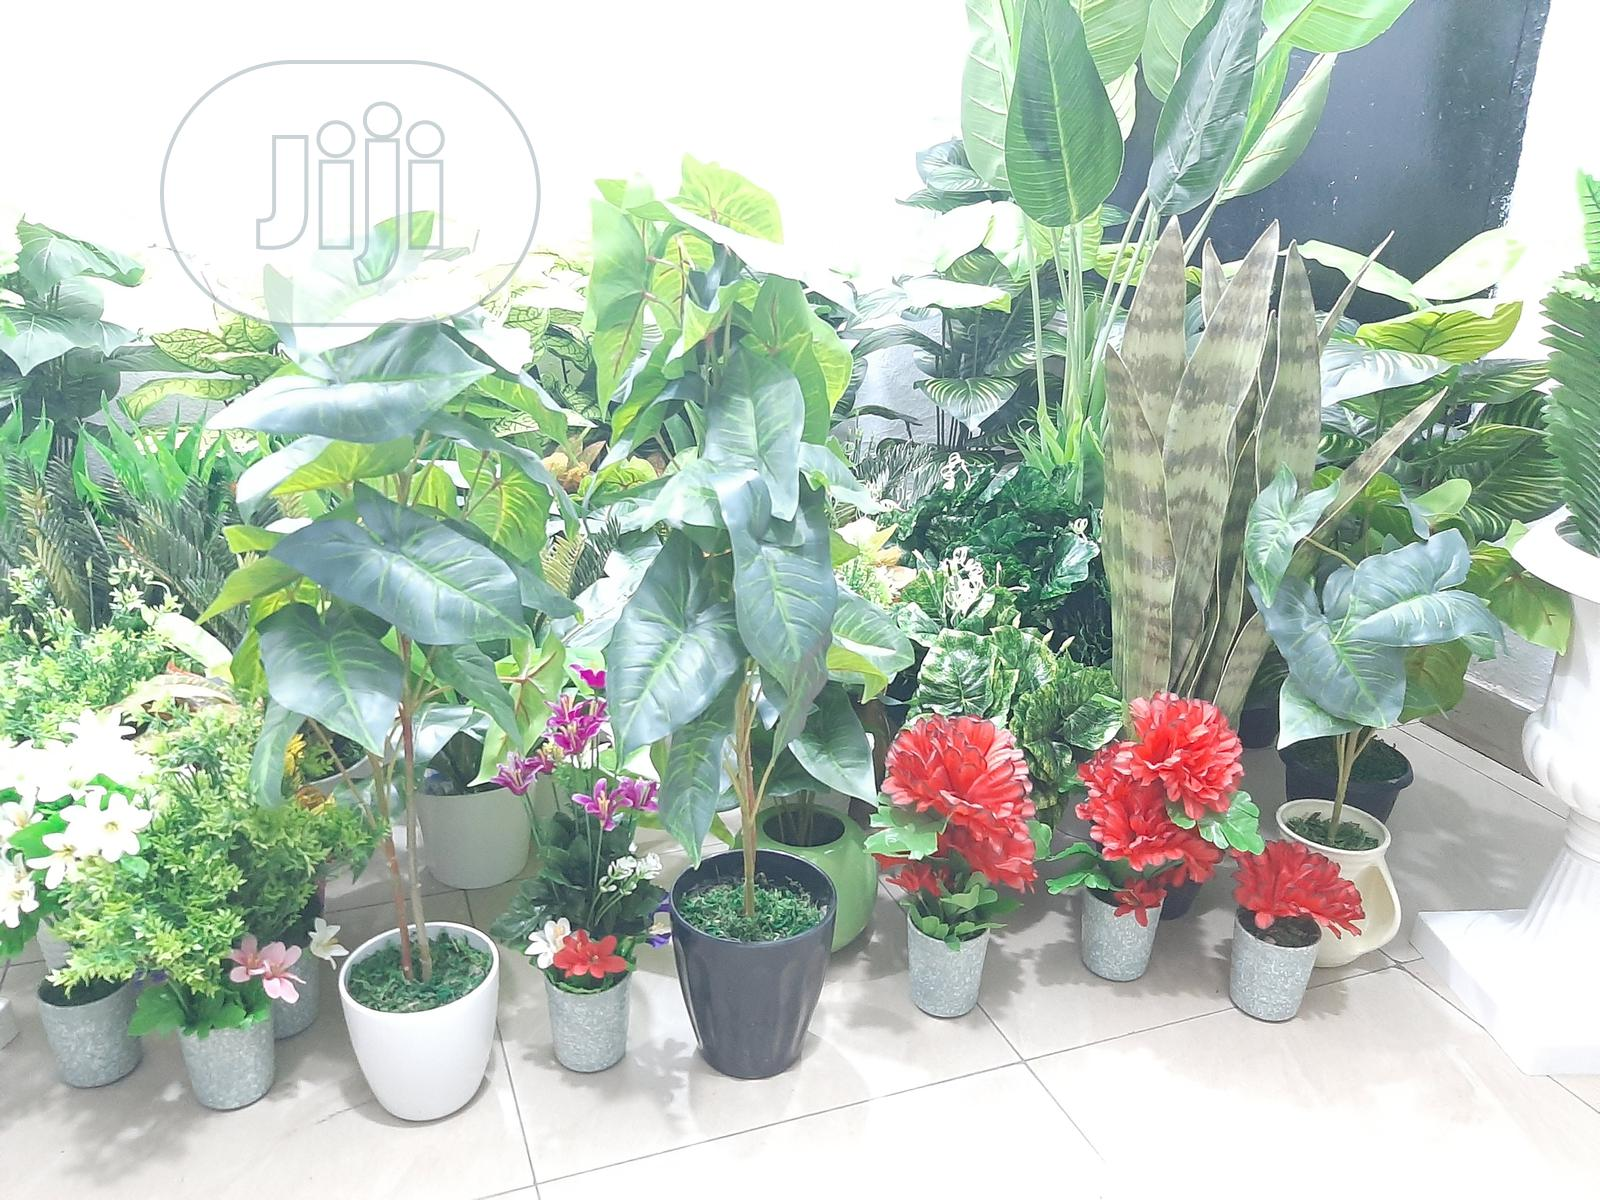 Outdoor Artificial Fake Plants,Live Like UV Resistant